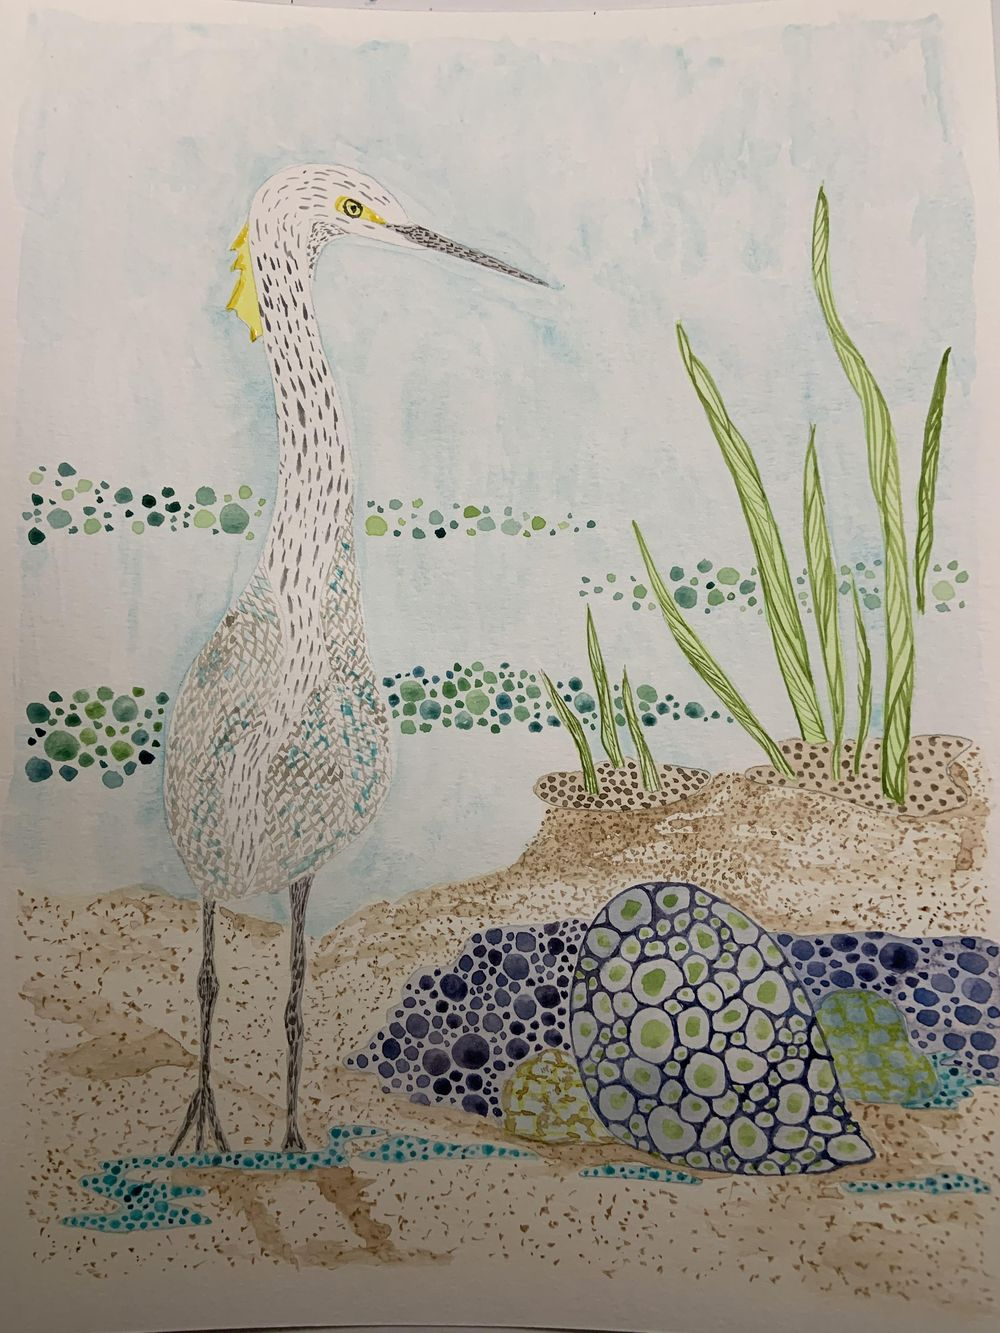 Snowy Egret - image 2 - student project